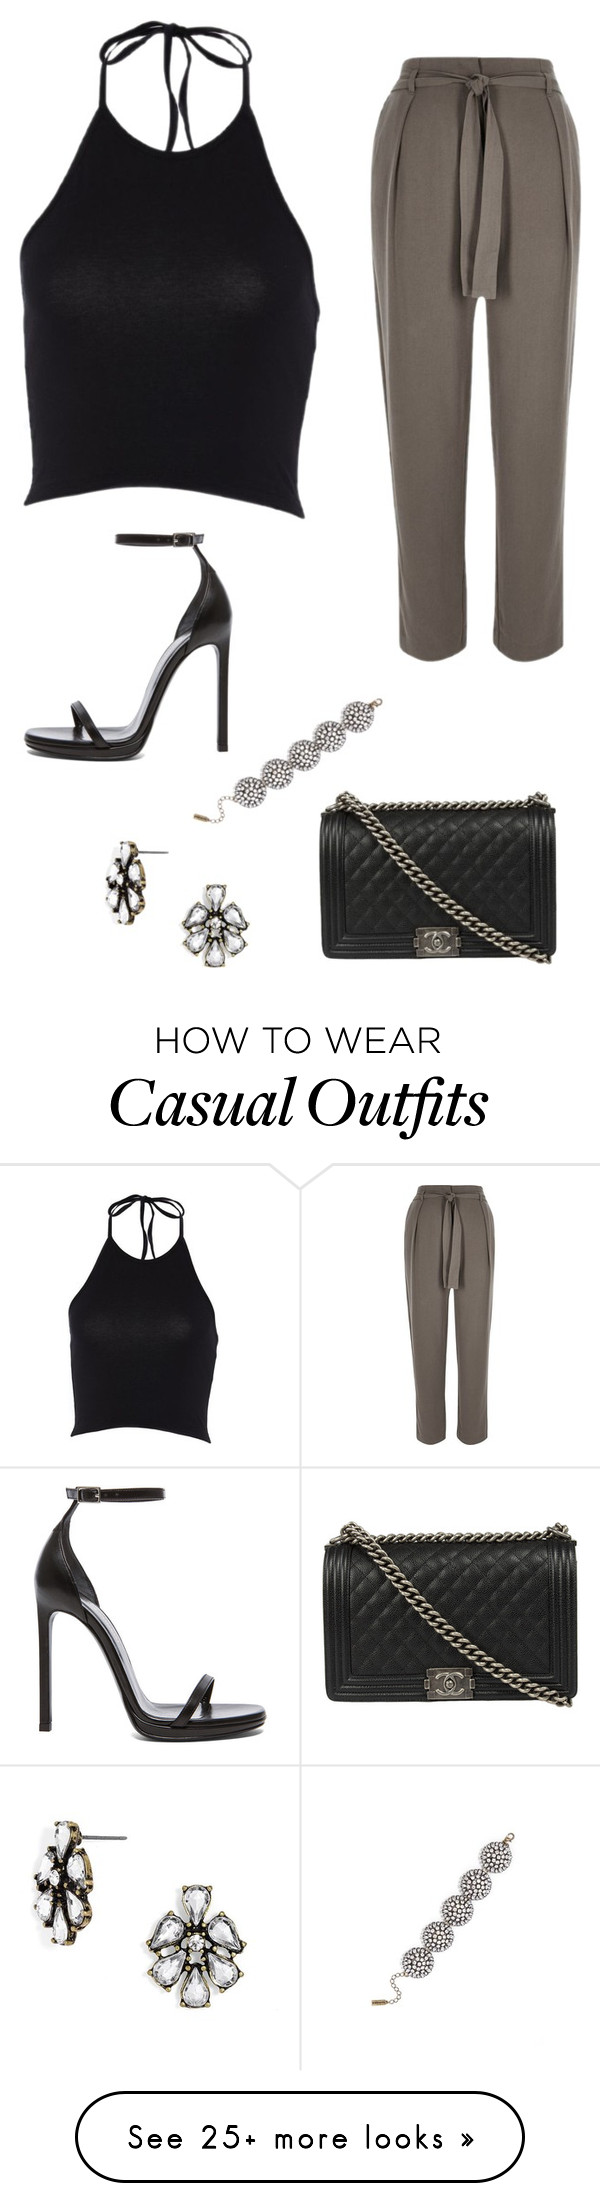 """Khaki tie pants - Casual"" by brittjade on Polyvore featuring River Island, Yves Saint Laurent, BaubleBar and Chanel"